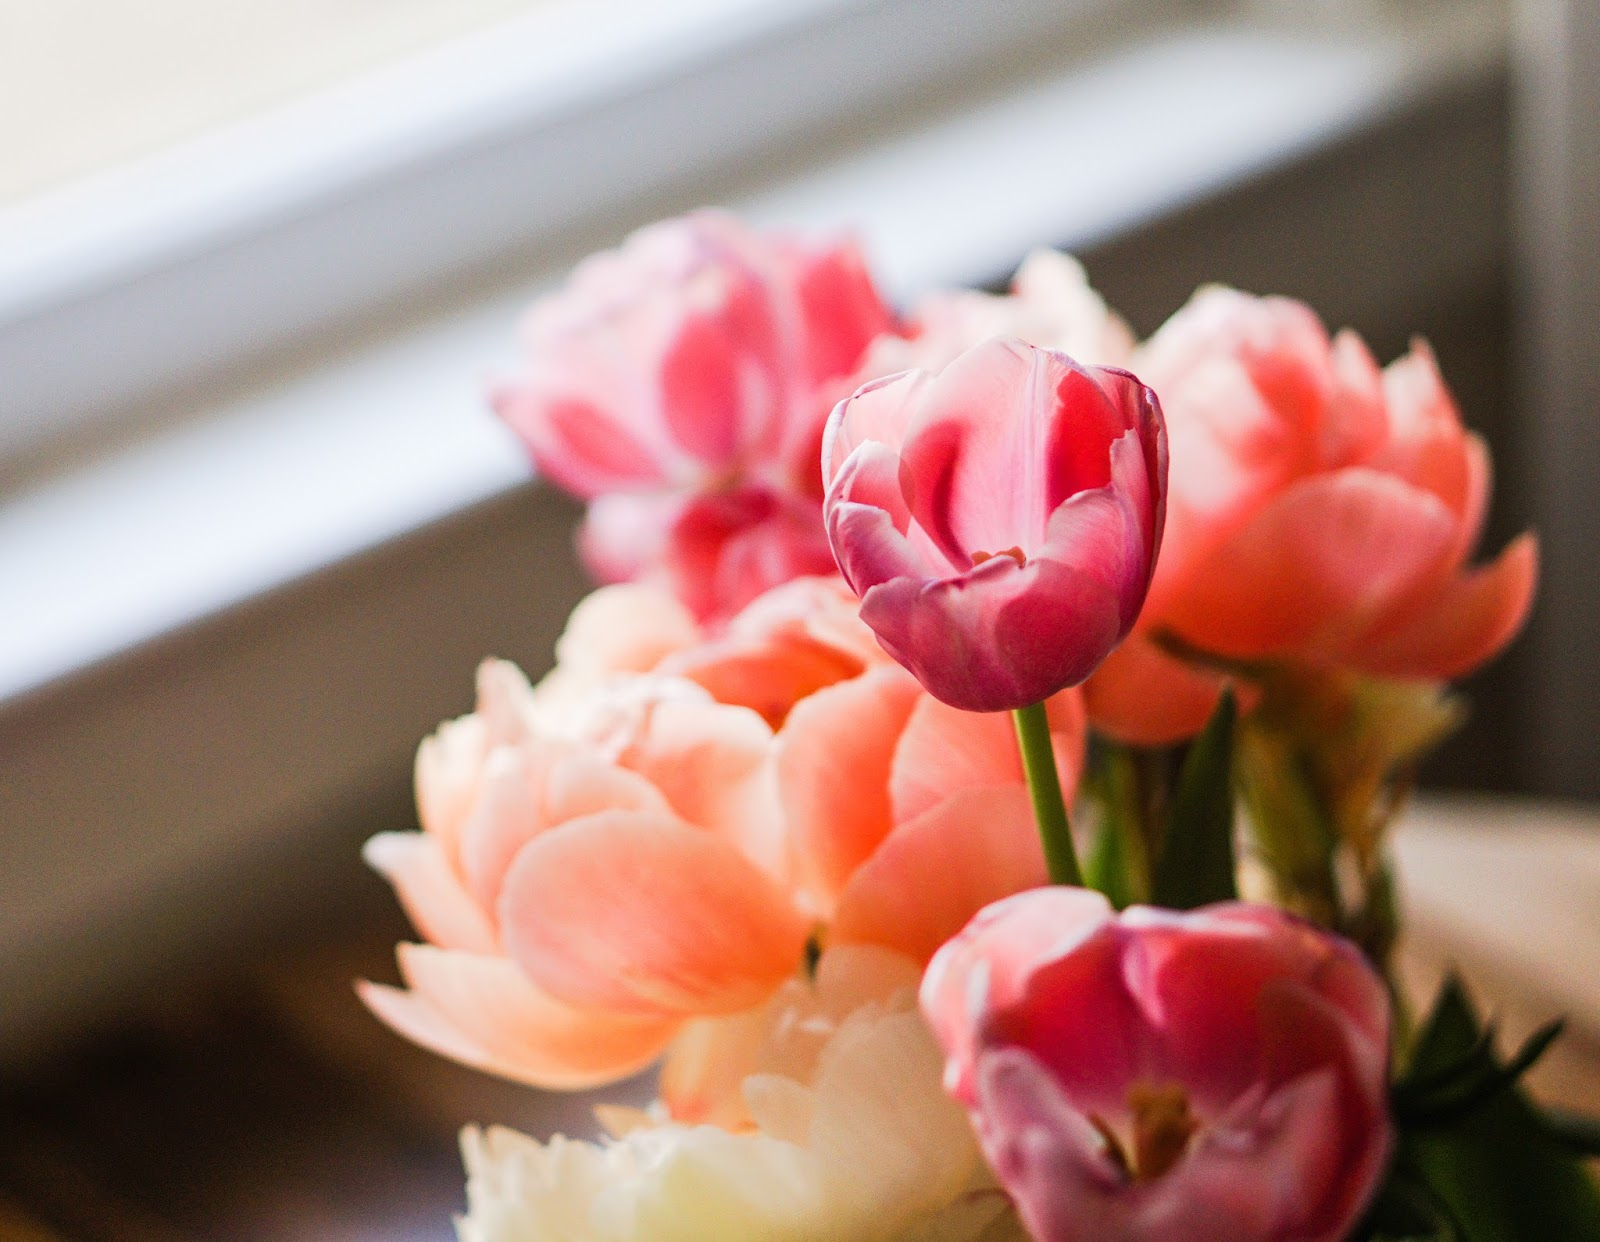 Bunch of flowers - care home decoration